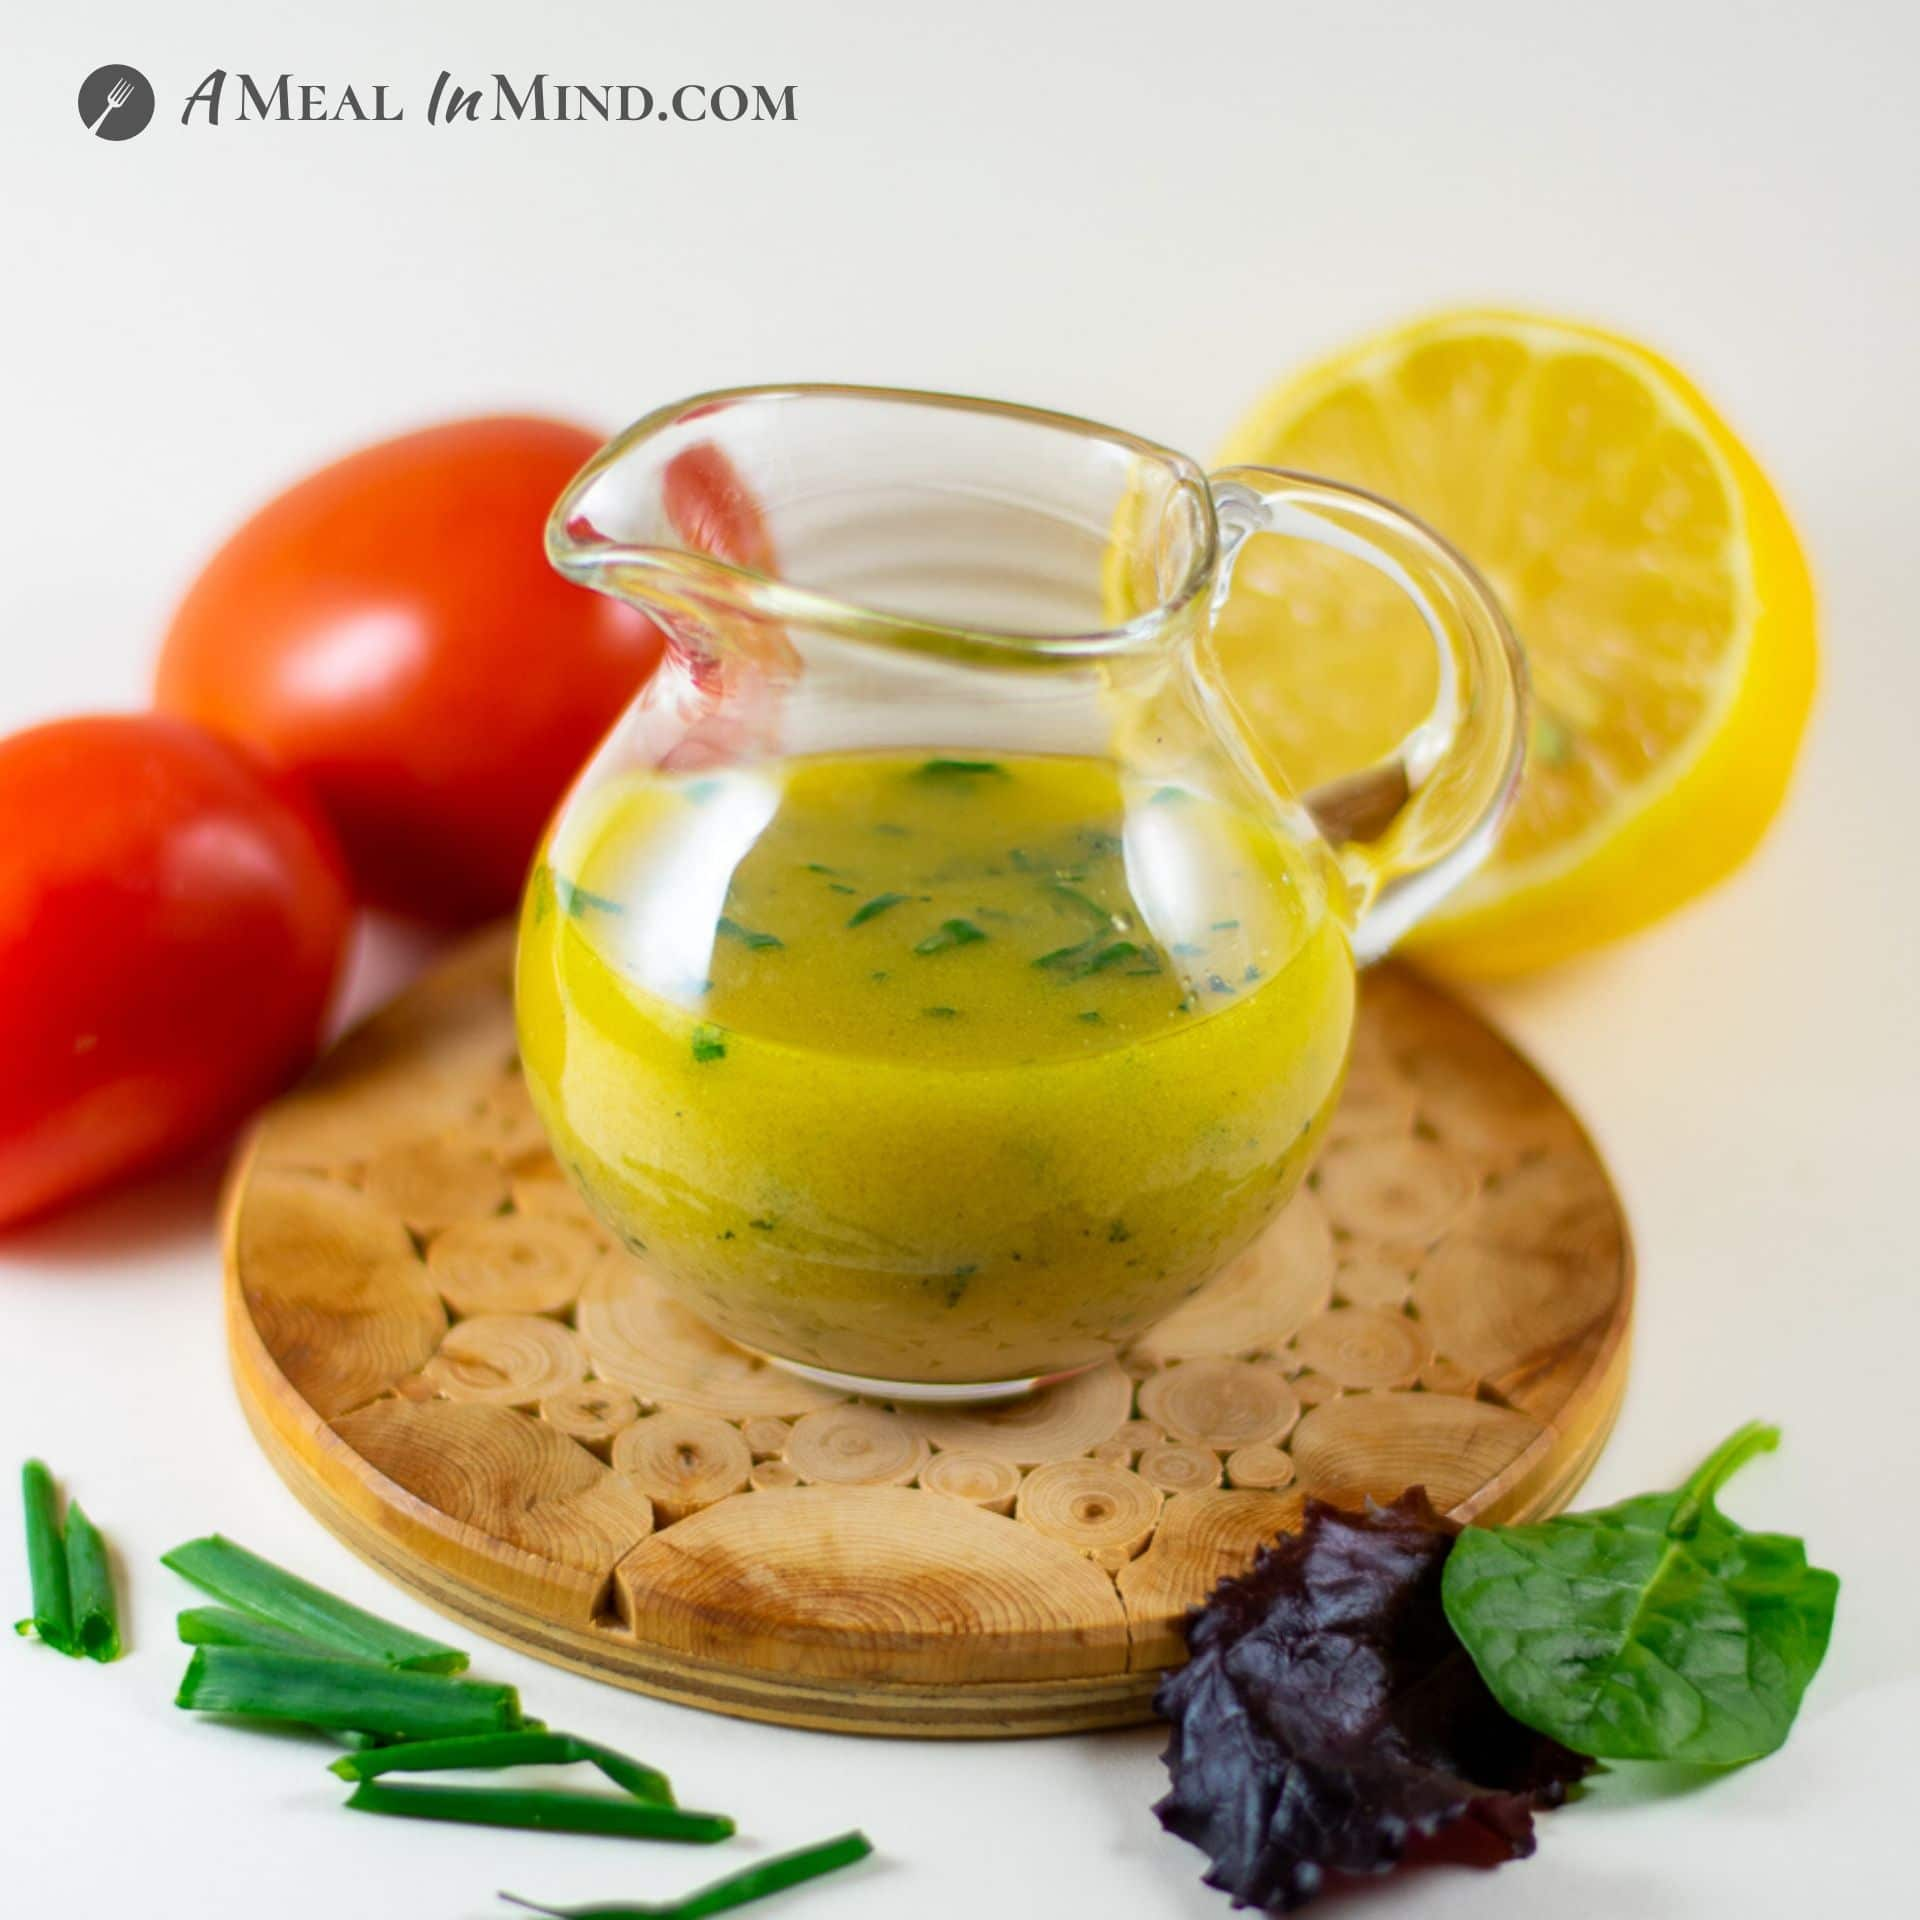 lemony garlic-mustard vinaigrette